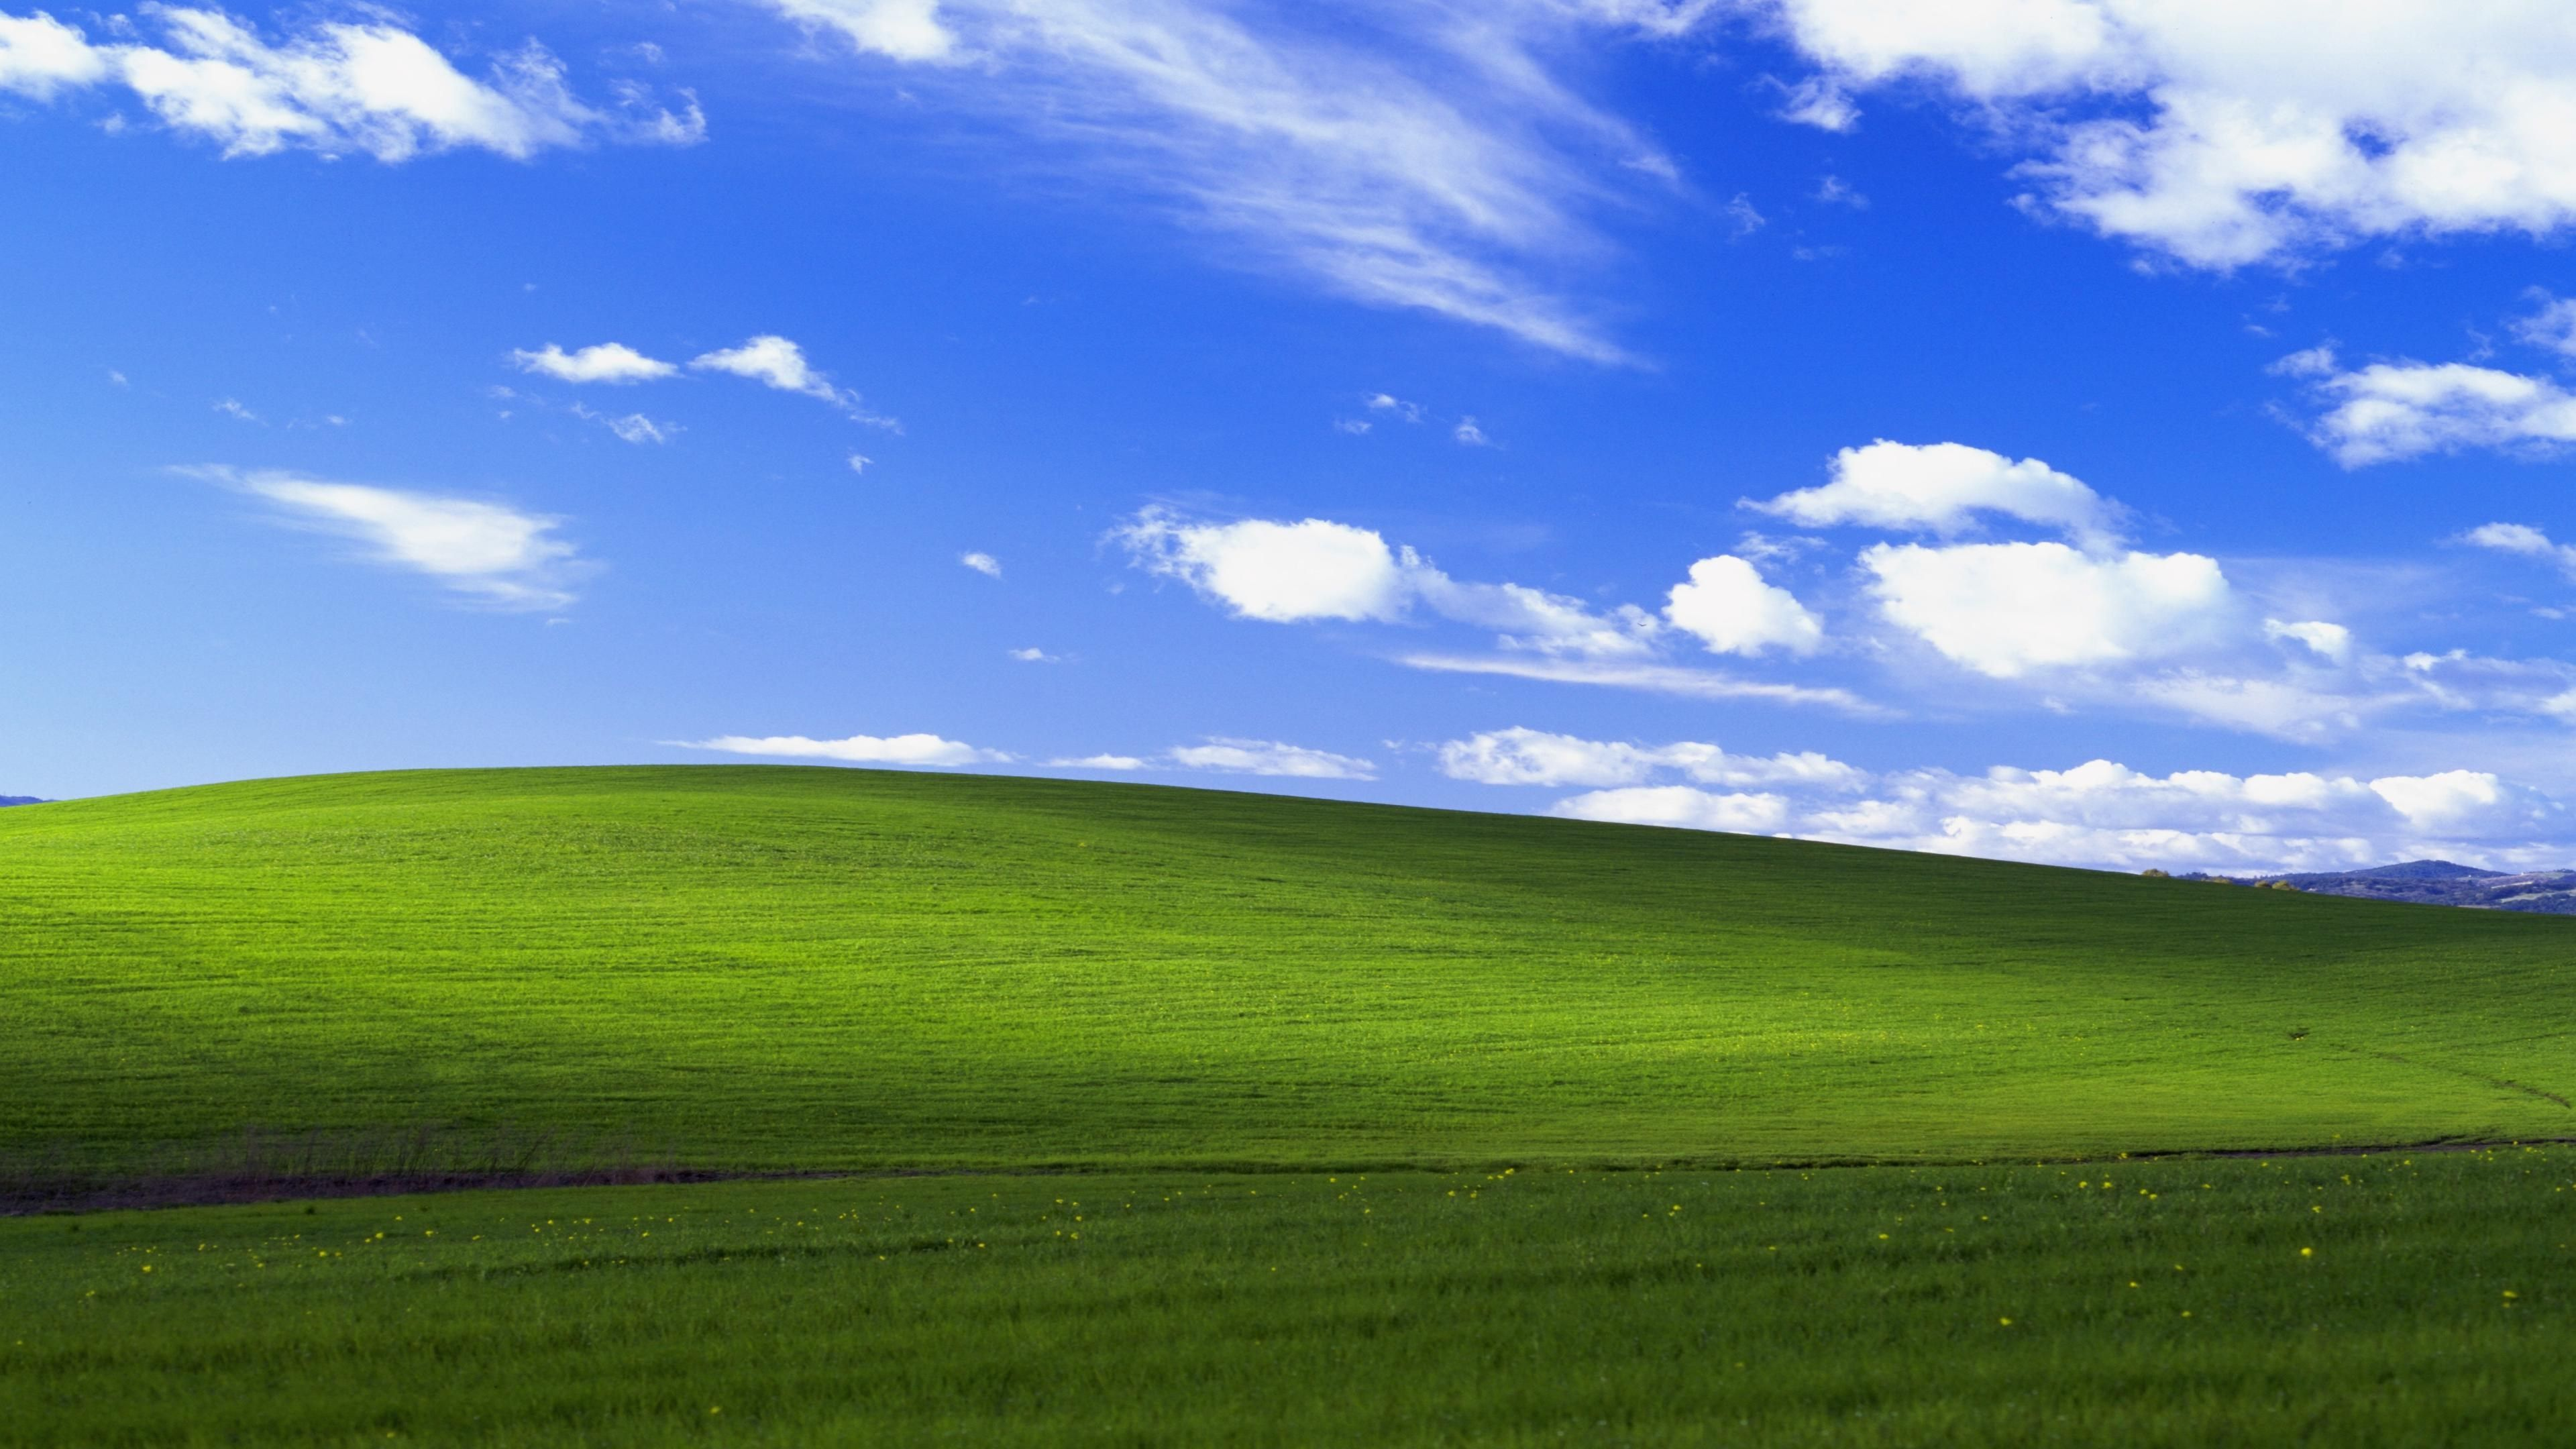 windows xp bliss 4k Desktop (con imágenes) Fondo windows